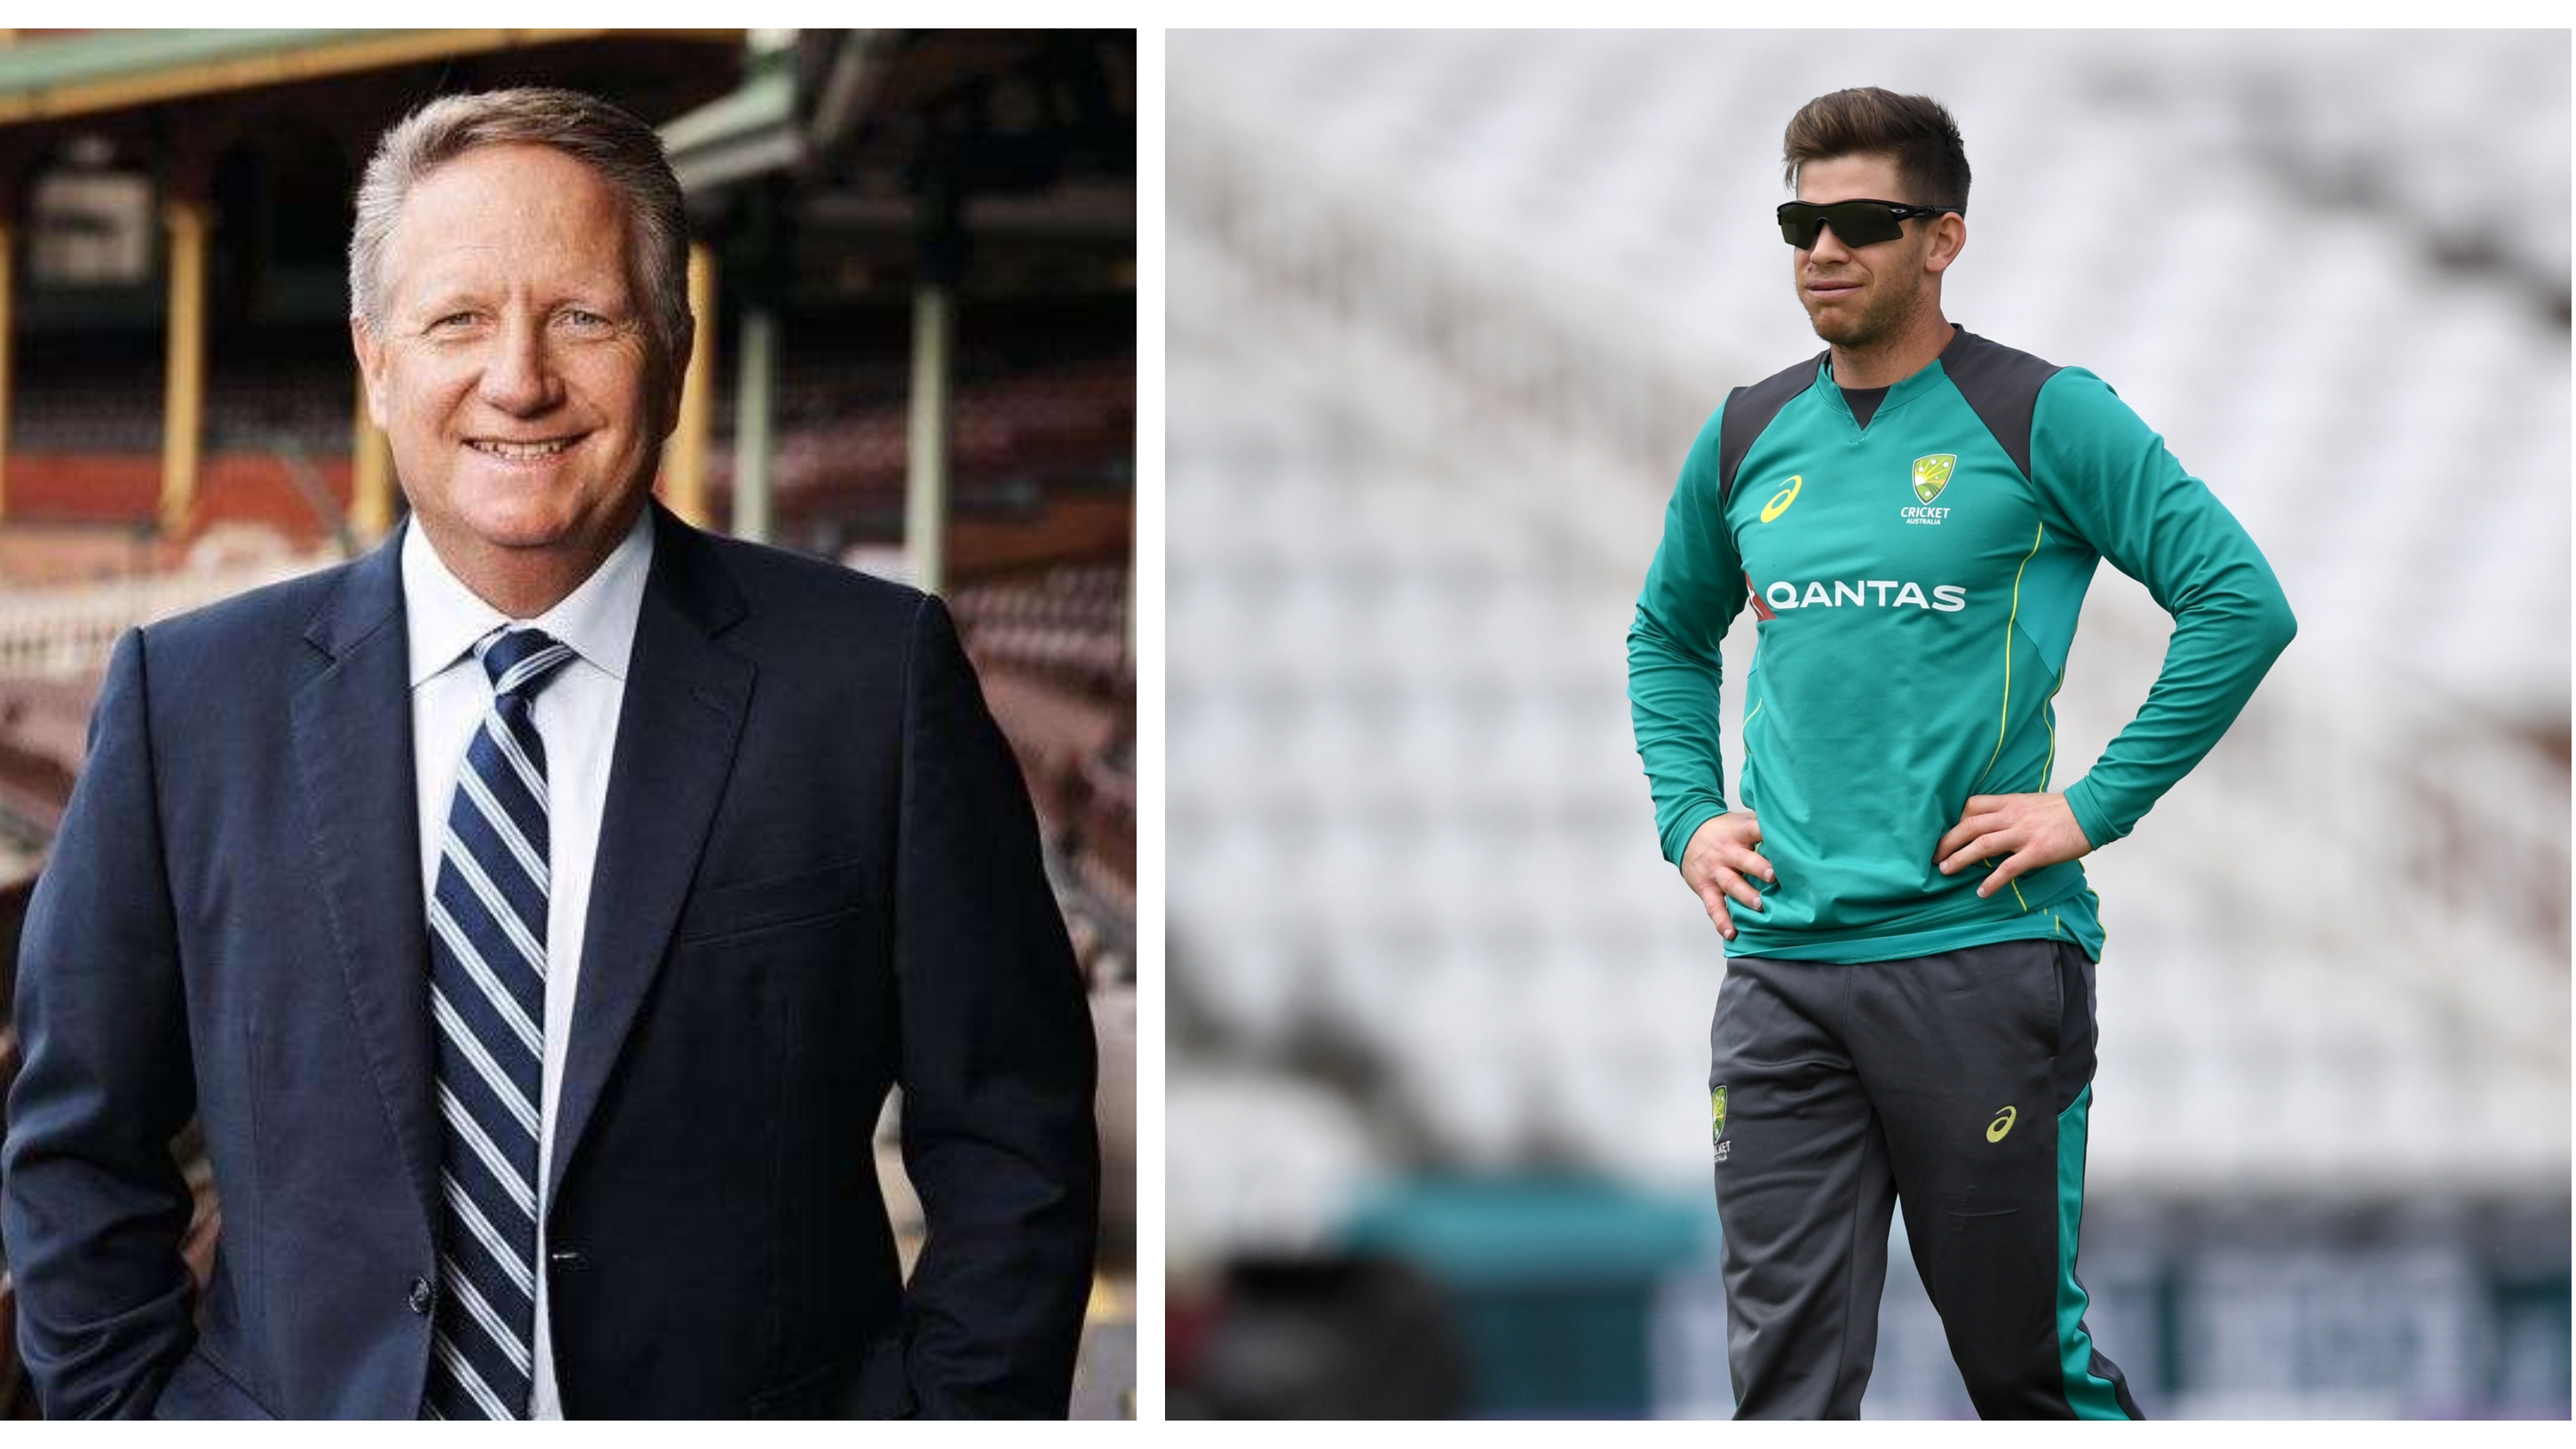 Australia is lucky to have Tim Paine, says Ian Healy